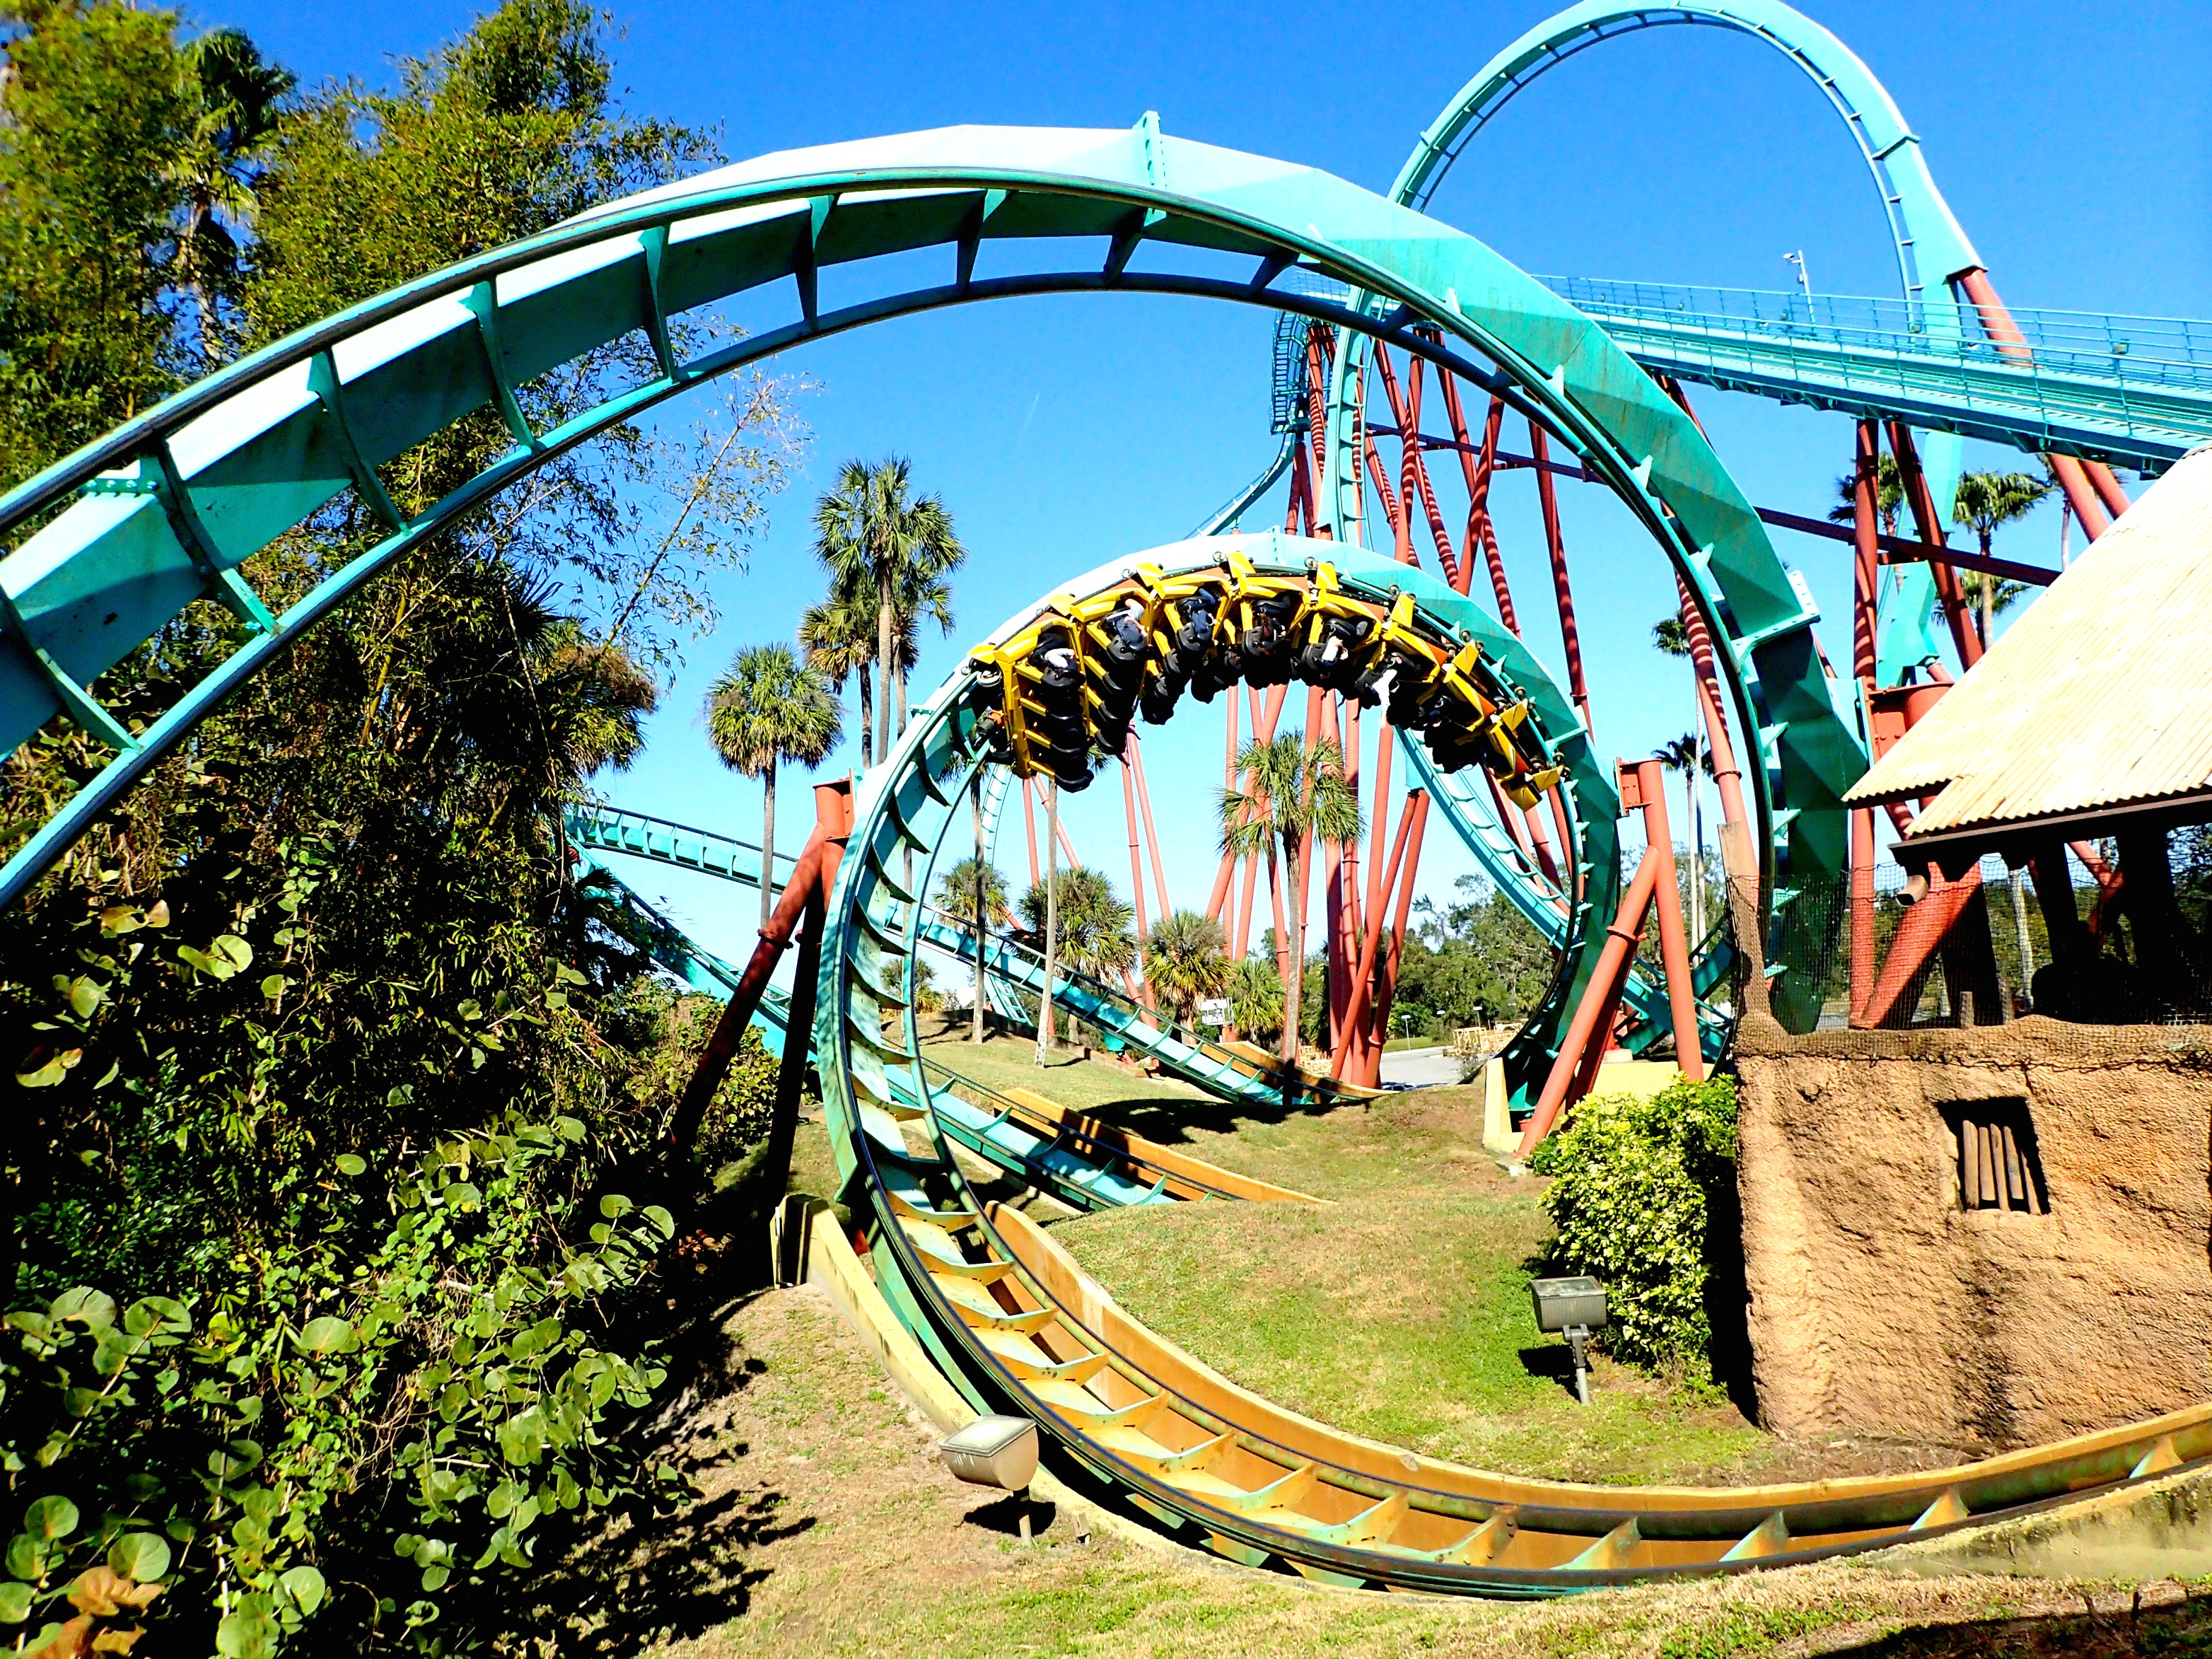 Busch Gardens Tampa For 5 Year Old